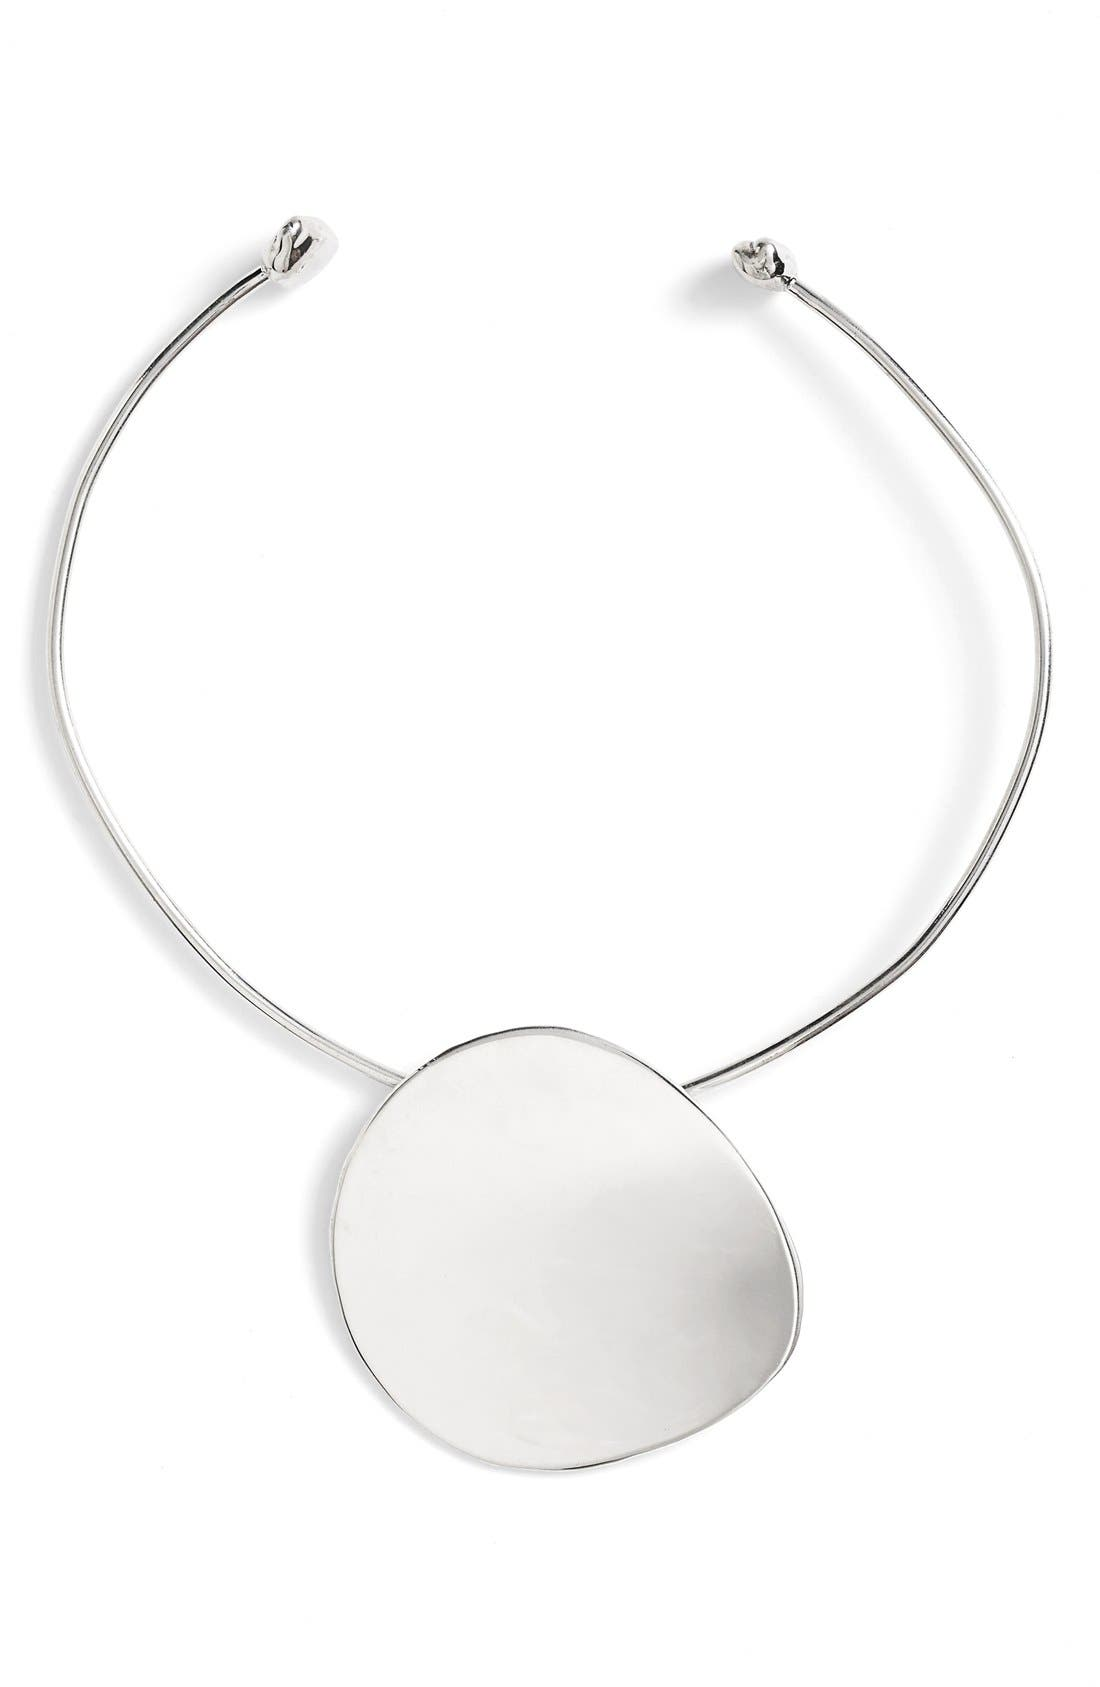 Pendo Collar Necklace,                             Main thumbnail 1, color,                             SILVER